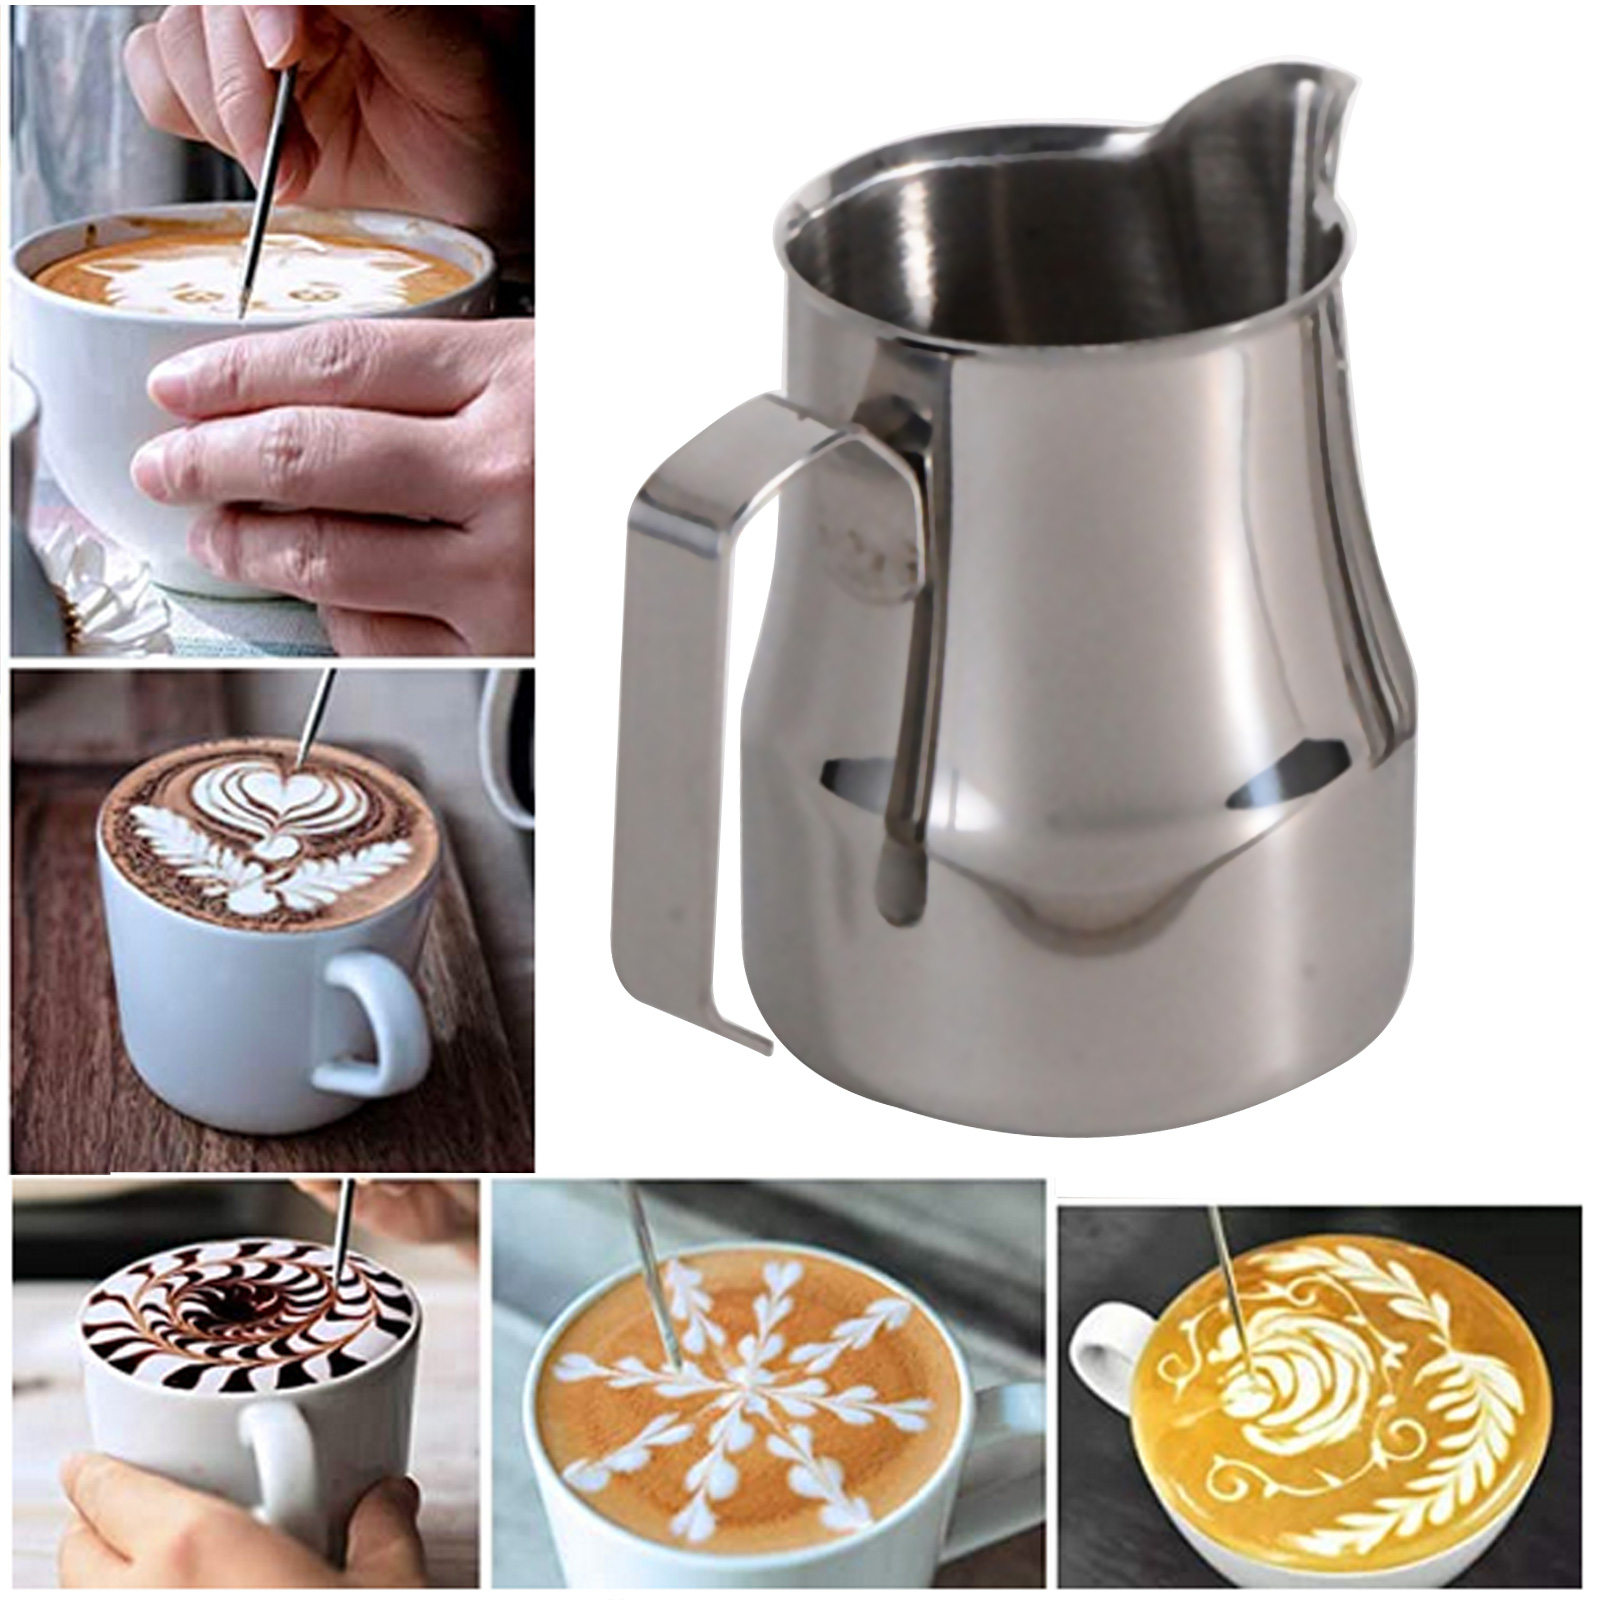 304 Stainless Steel Milk Frothing Pitcher 350ml Milk Coffee Steam Pitchers Suitable for Espresso Latte Art Frothing Milk